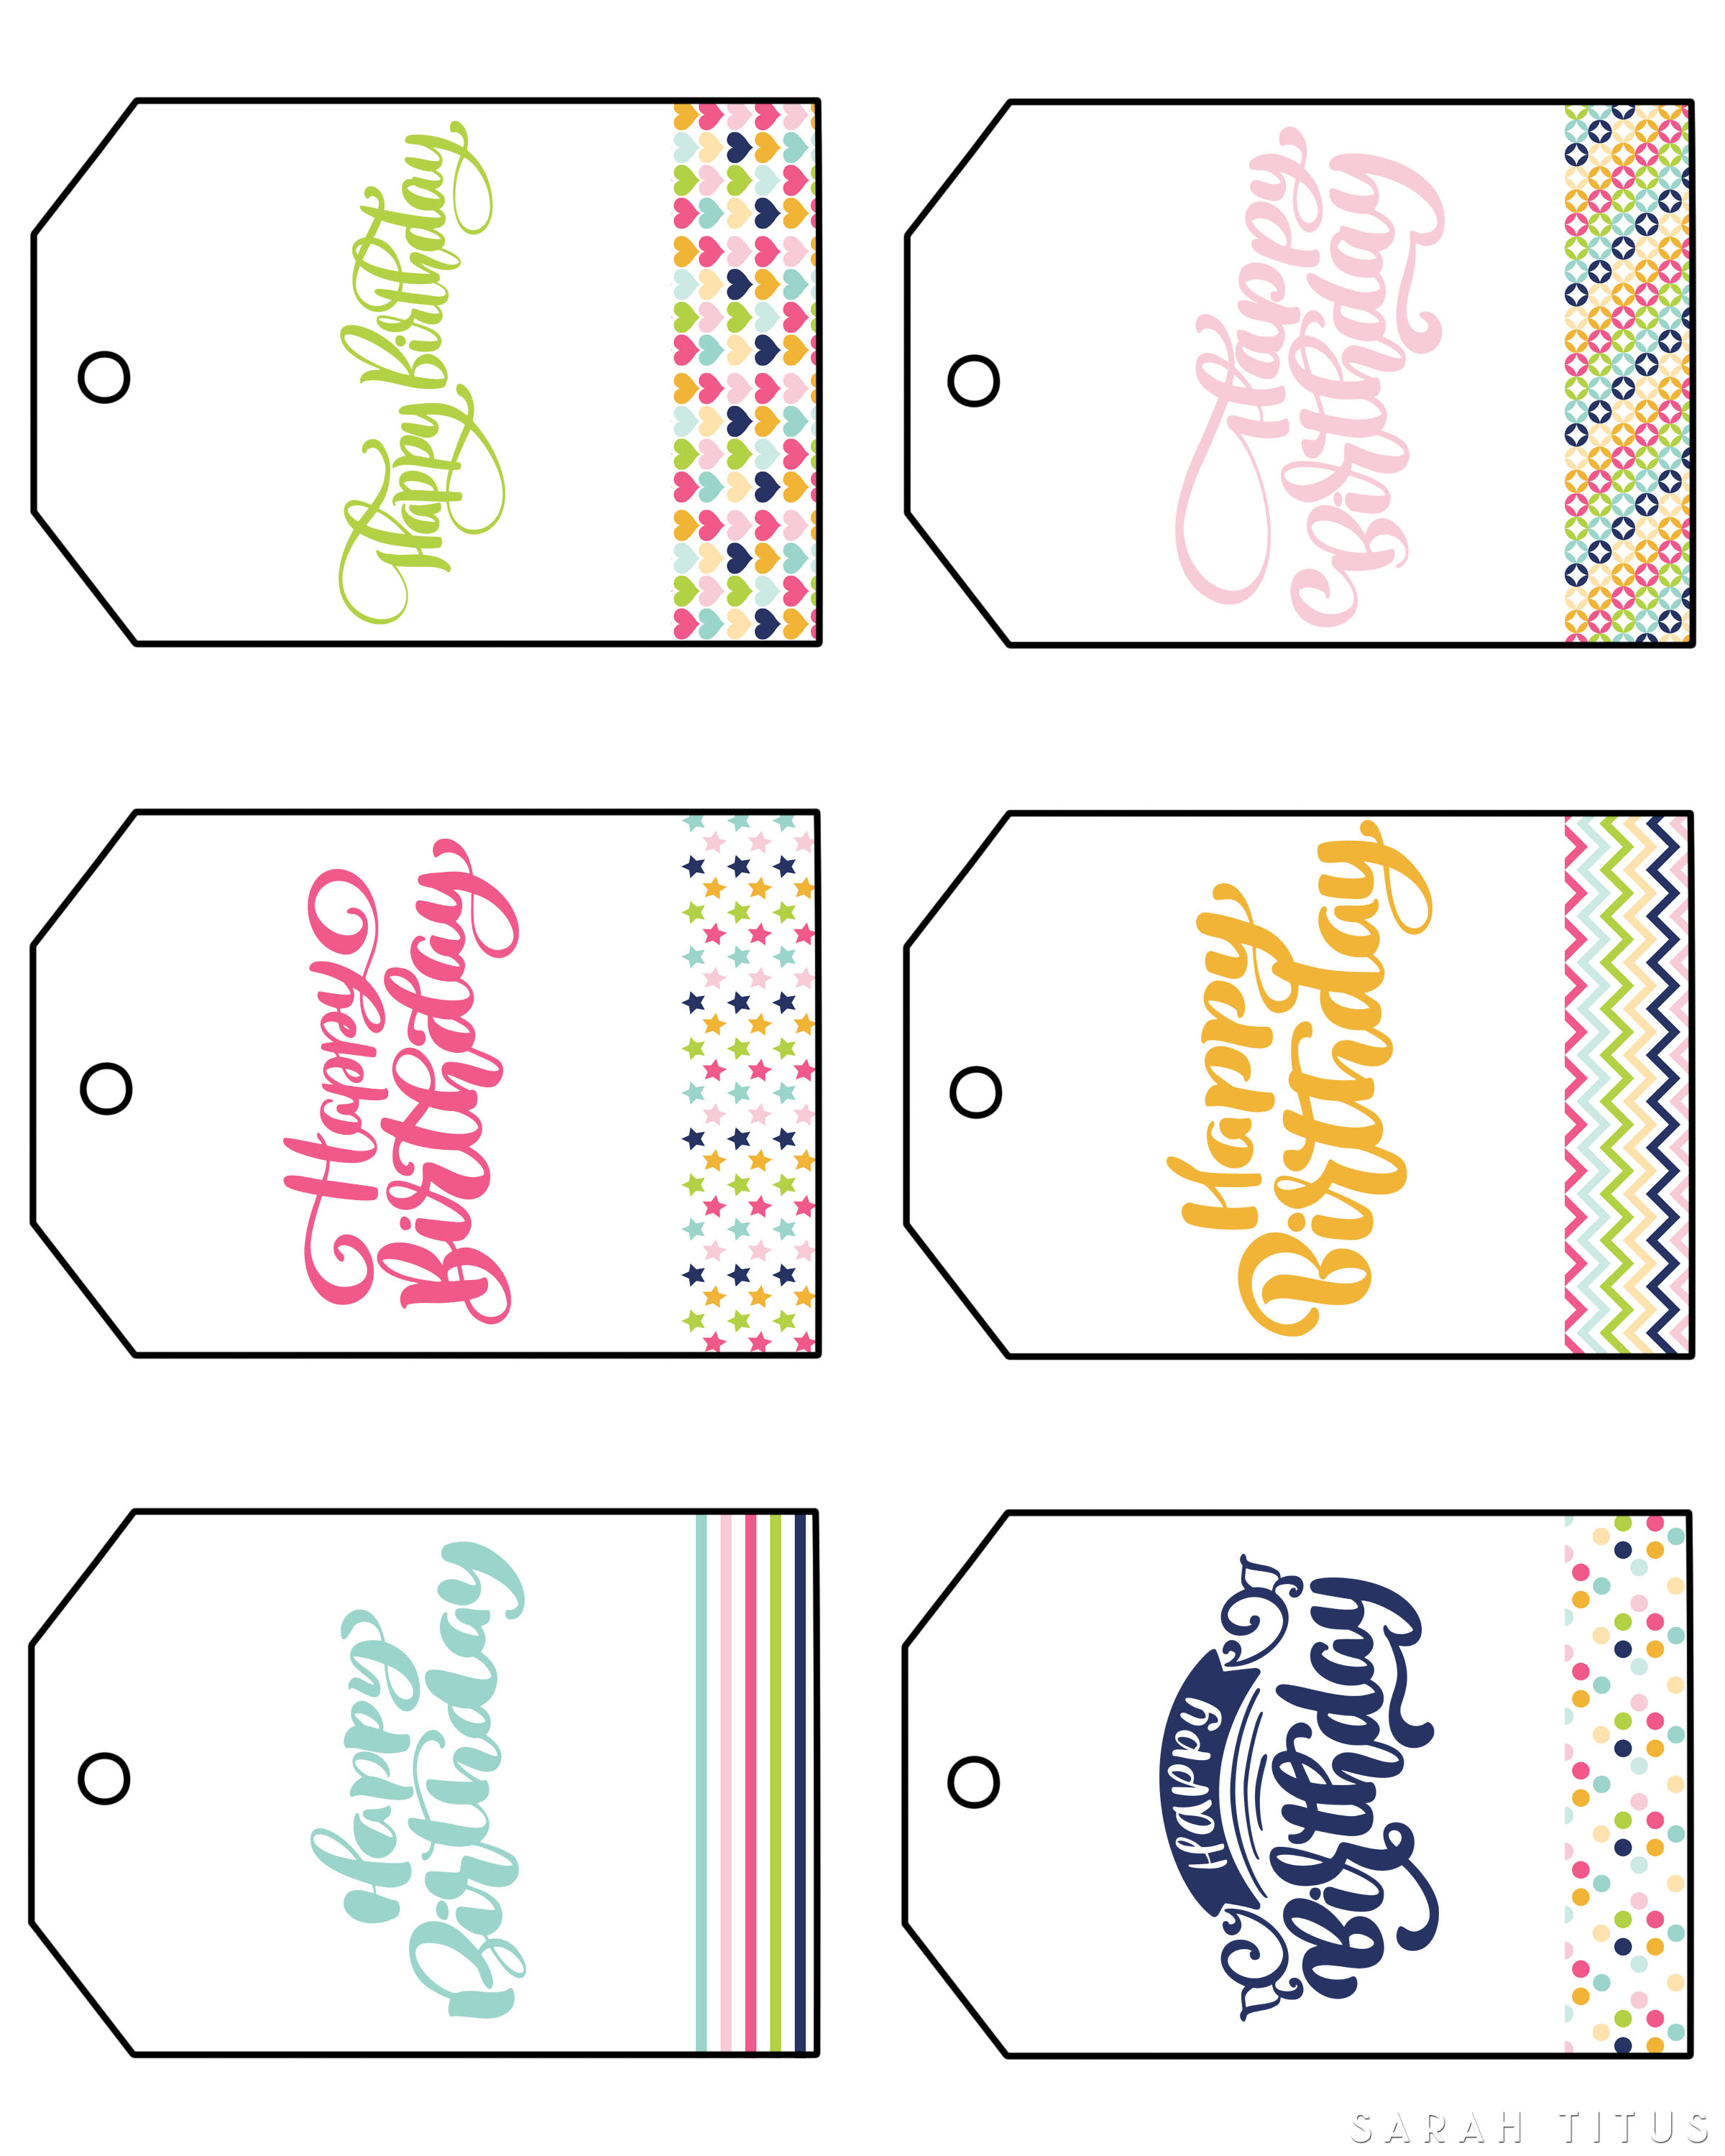 Free Printable Happy Birthday Gift Tags - Sarah Titus - Free Printable Birthday Tags